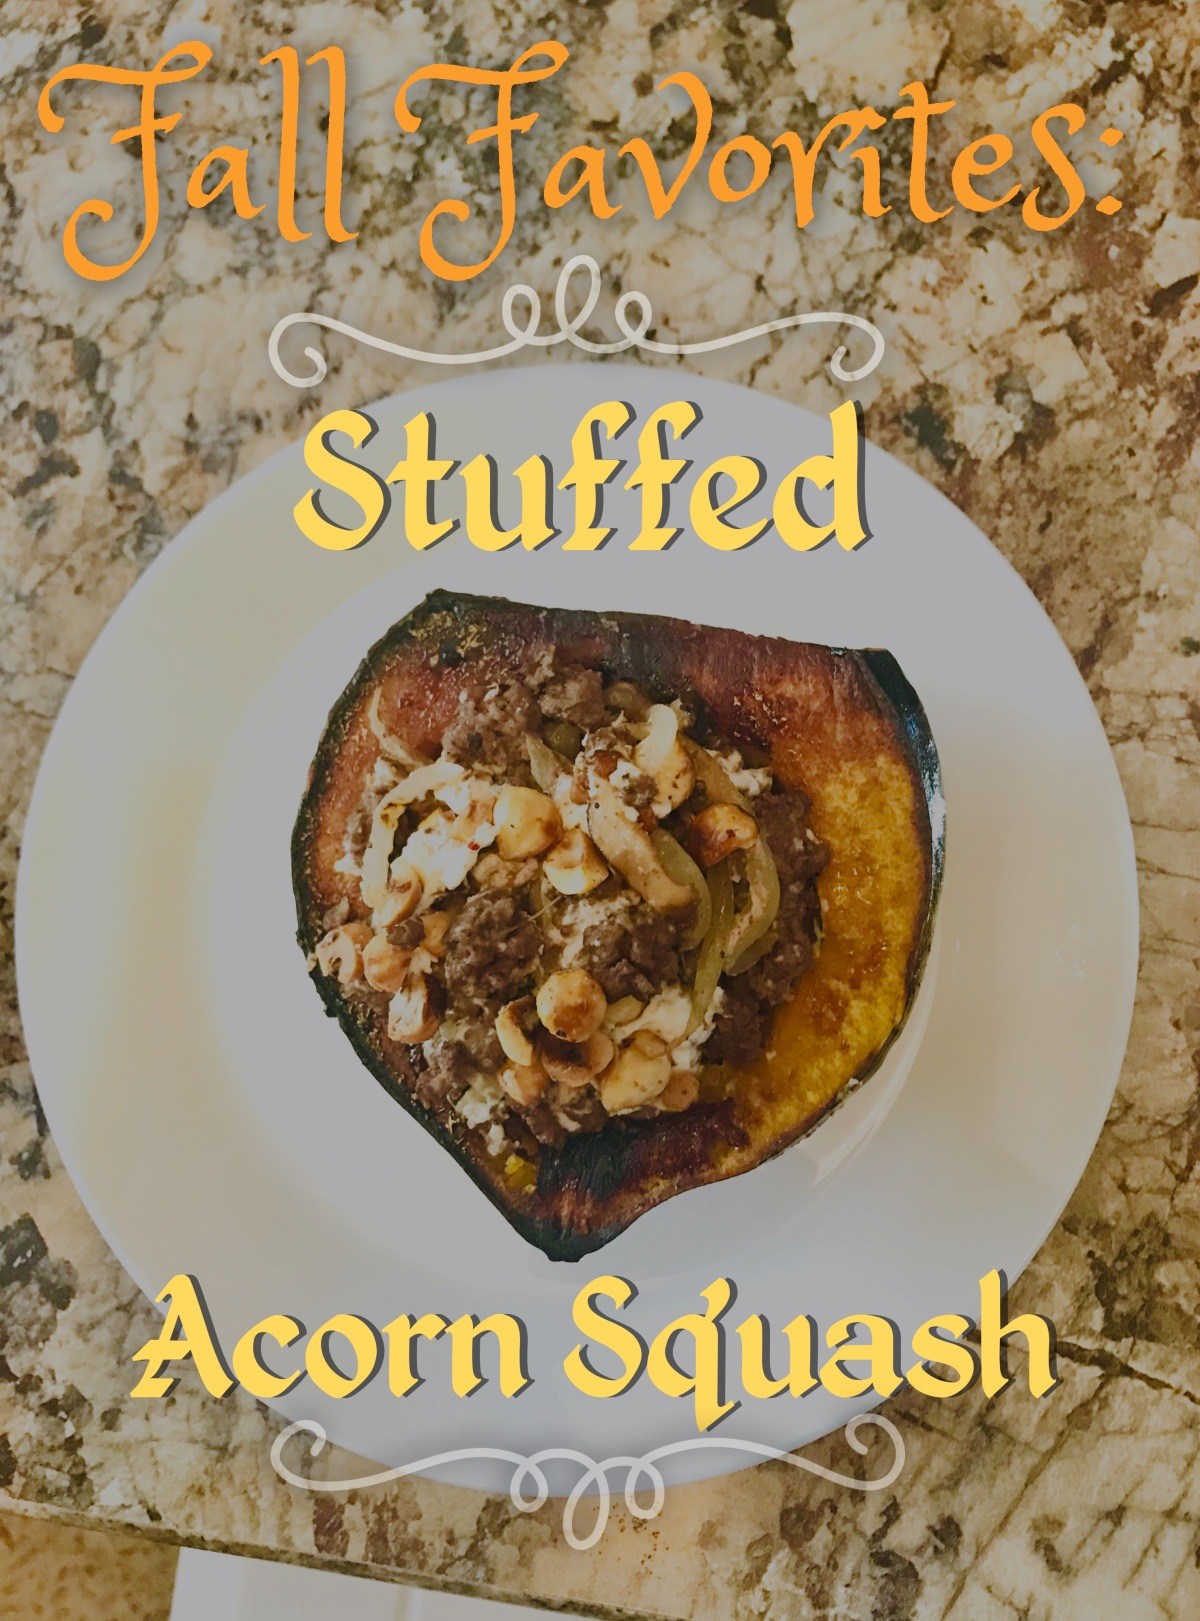 Friday Fall Favorites: Stuffed Acorn Squash Recipe